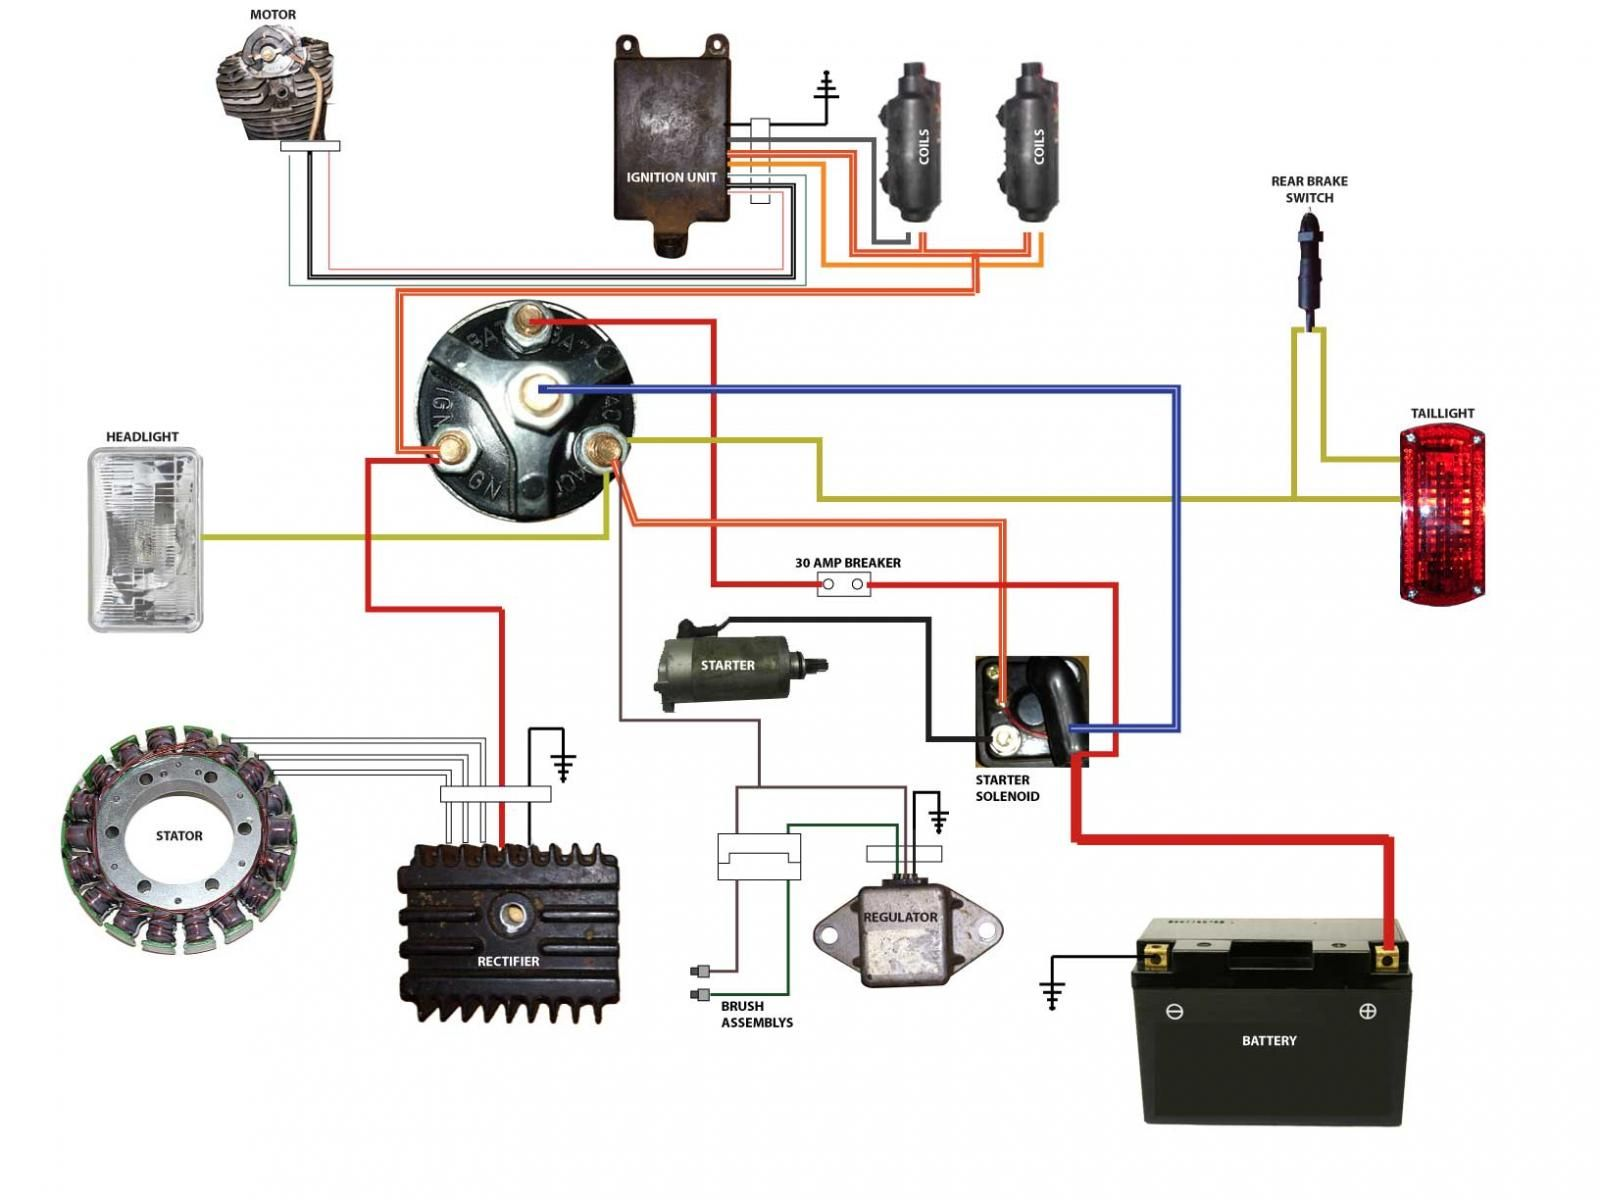 d72b6b9978ded4378b16620a38821410 simplified wiring diagram for xs400 cafe motorcycle wiring XS400 Forum at virtualis.co